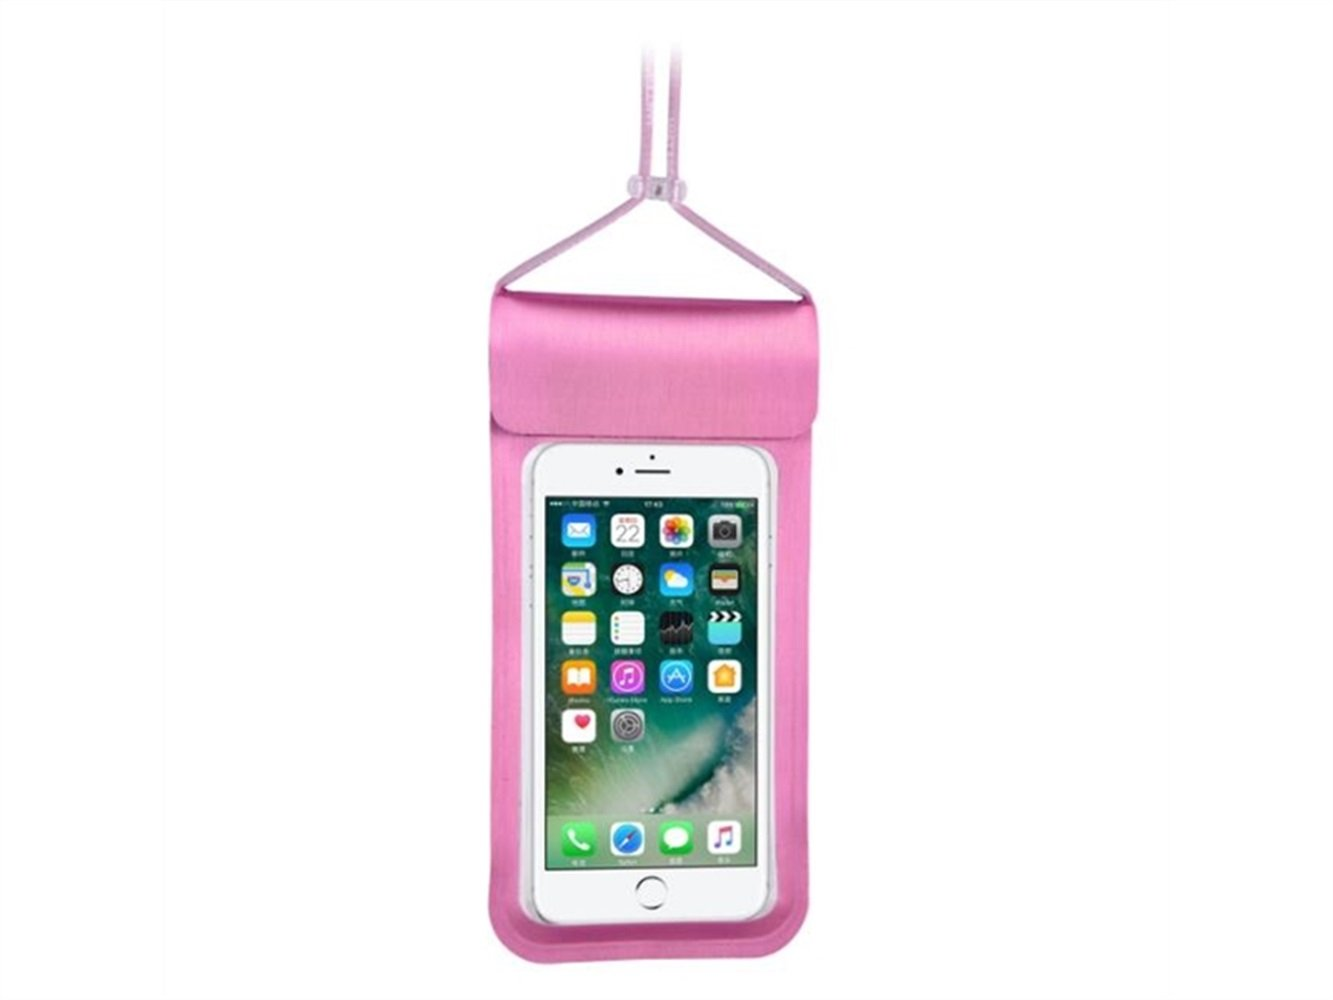 Wesource Good Protecter Portable Lanyard Waterproof Phone Bag Outdoor Beach Mobile Diving Bag for All Smartphones Up To 6.5 Inch(Pink)